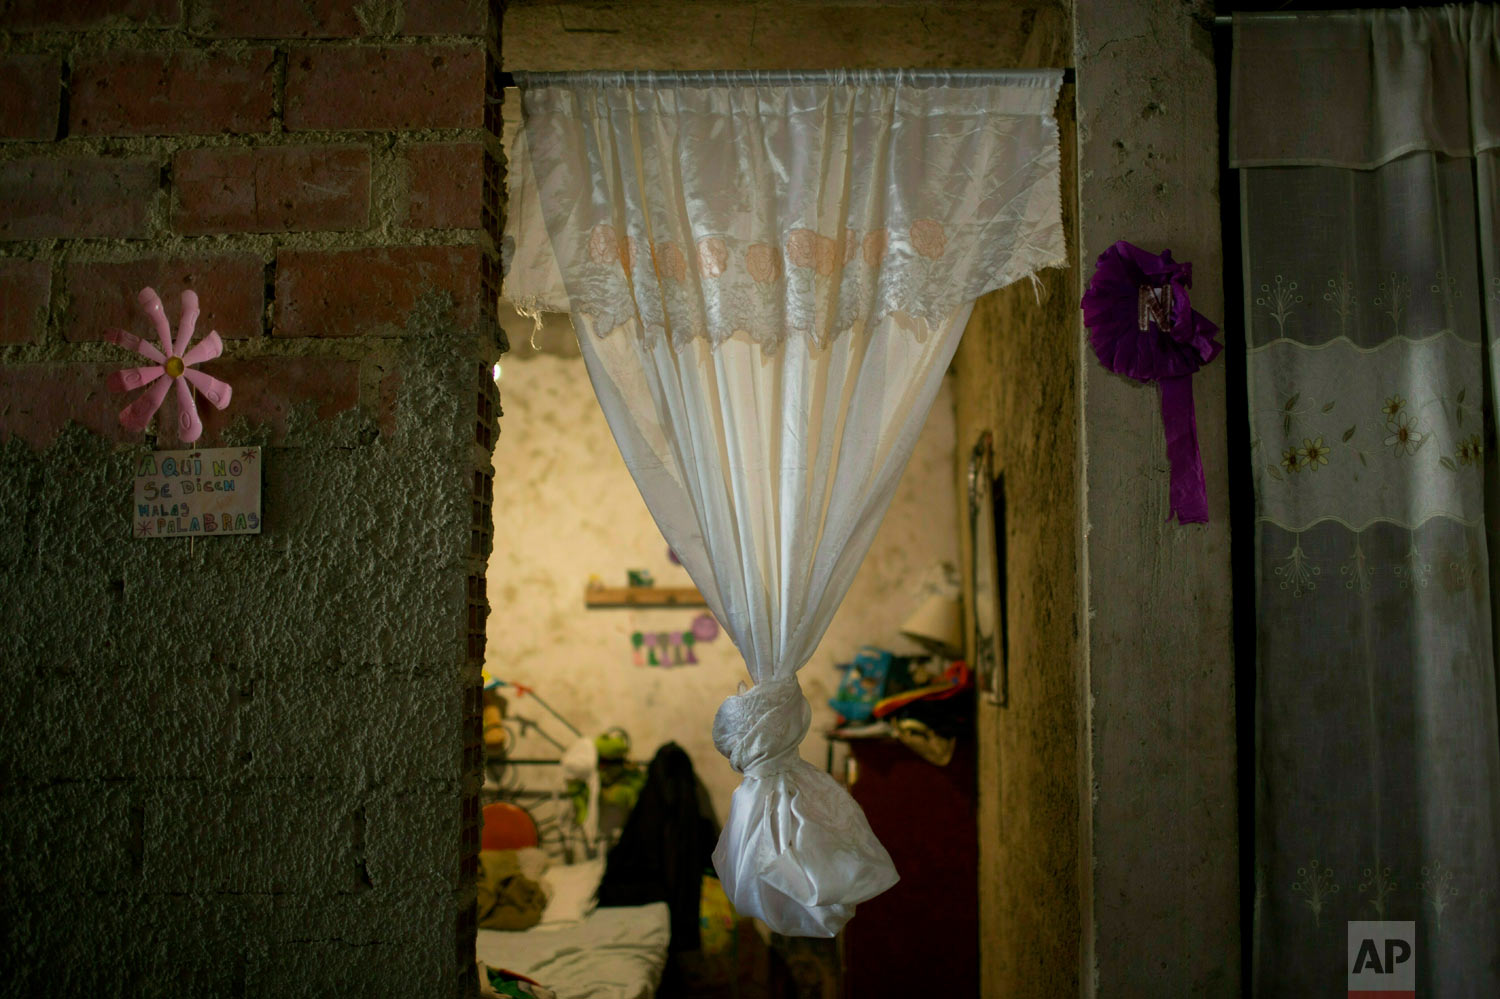 A curtain hangs in the bedroom doorway of slain Jhonny Godoy in La Vega slum of Caracas, Venezuela, Feb. 19, 2019. According to his family, two days after proclaiming his opposition to President Nicolas Maduro on Twitter, rifle-wielding special police agents wearing black masks stormed into their home, pulled him outside and shot the 29-year-old to death. (AP Photo/Ariana Cubillos)